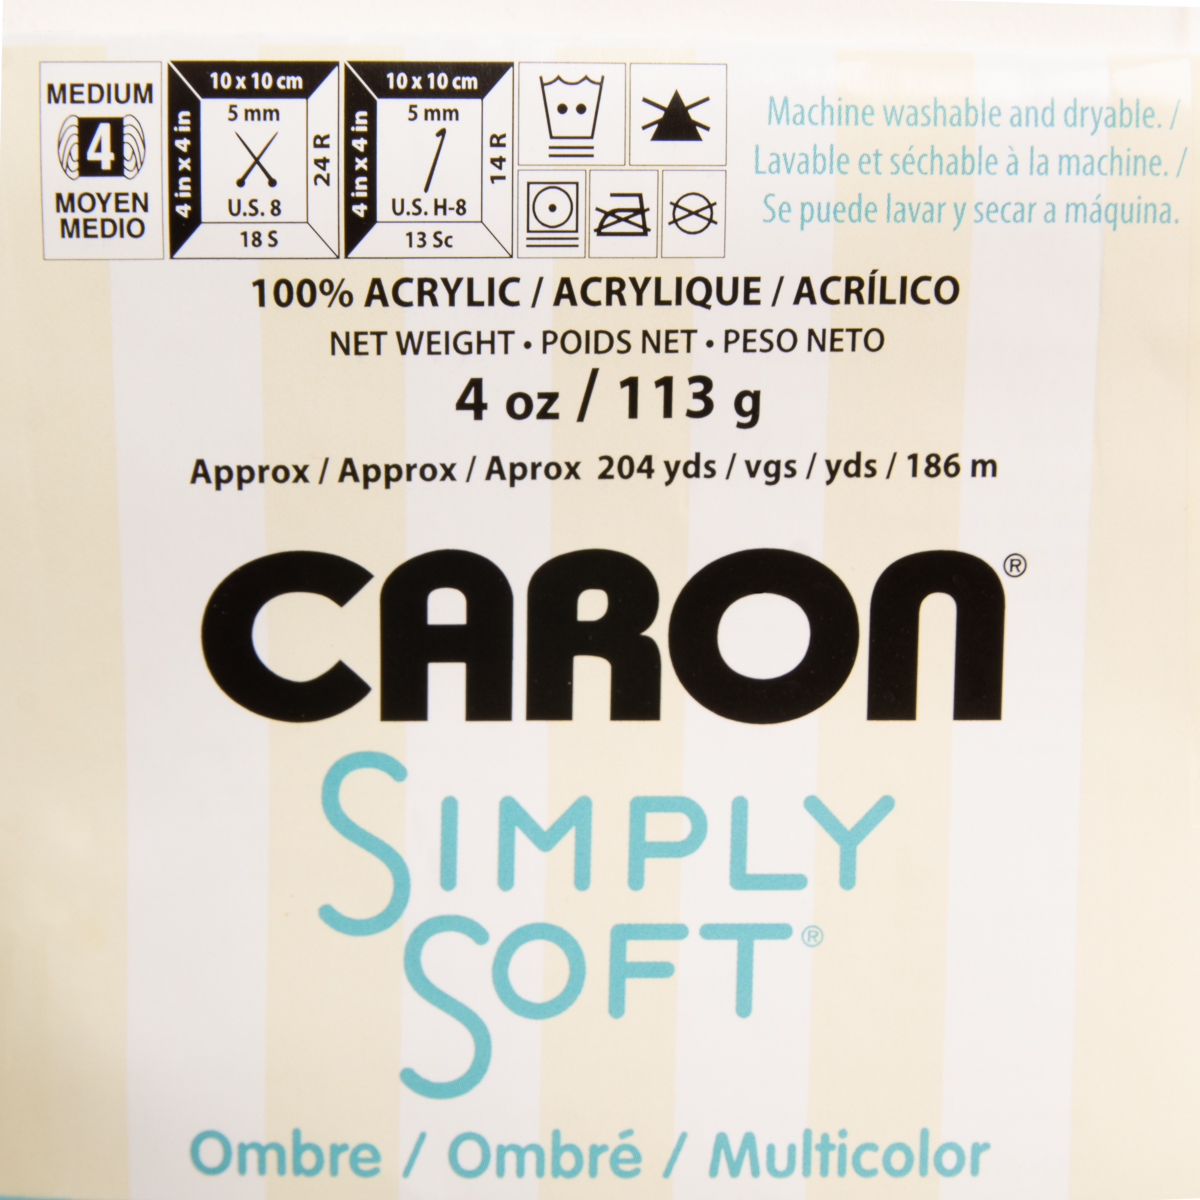 3pk-Caron-Simply-Soft-100-Acrylic-Yarn-Medium-4-Knitting-Crocheting-Skein-Soft thumbnail 10